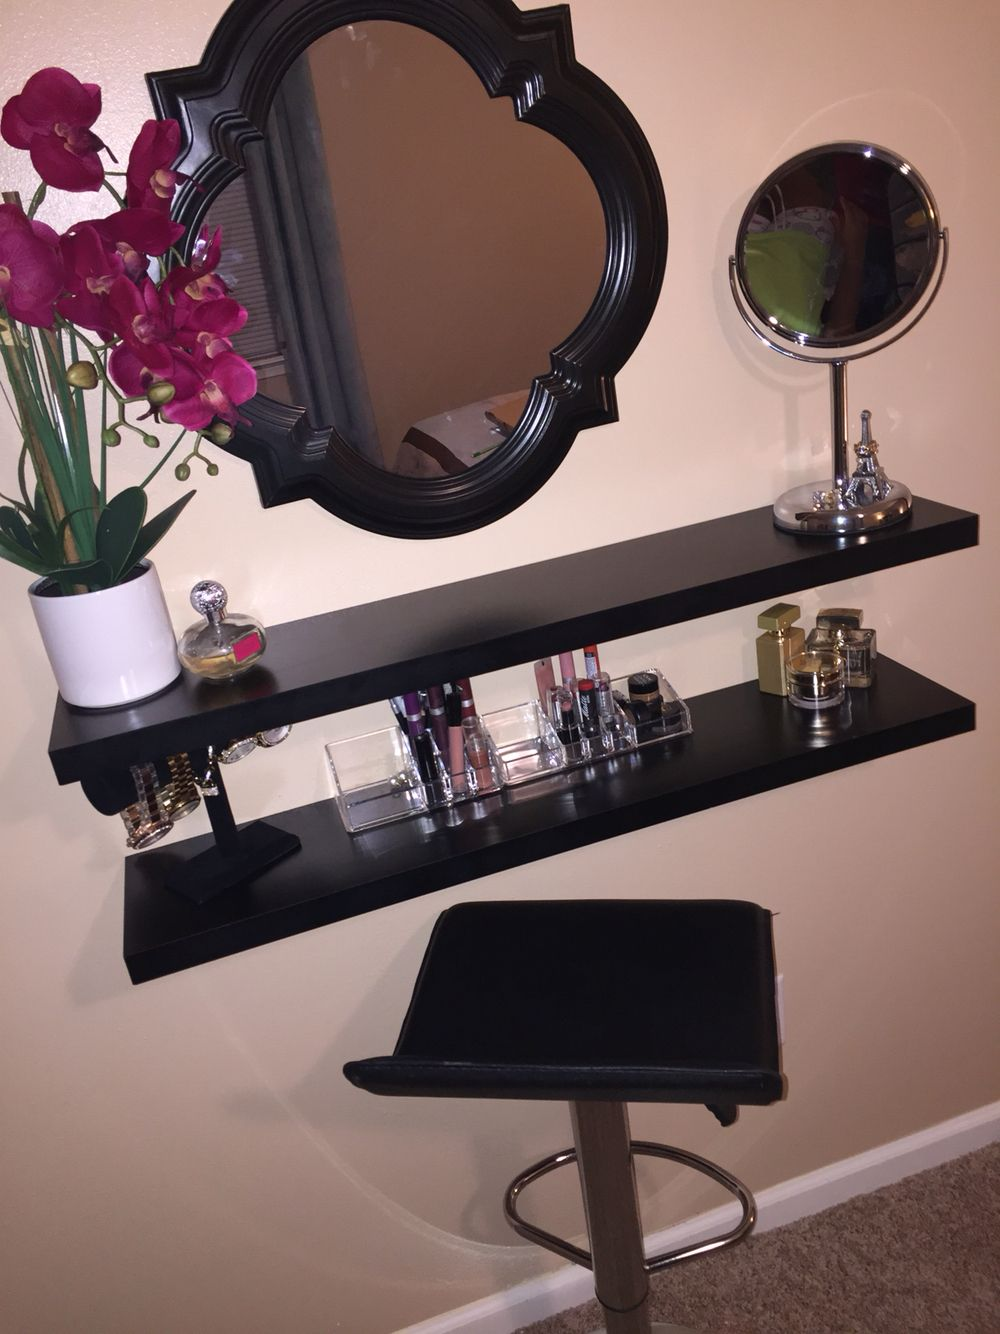 very own diy vanity made using floating shelves makeup granite breakfast bar support garage shelving bracket ideas shelf storage custom open kitchen ikea bookshelf cube prepac